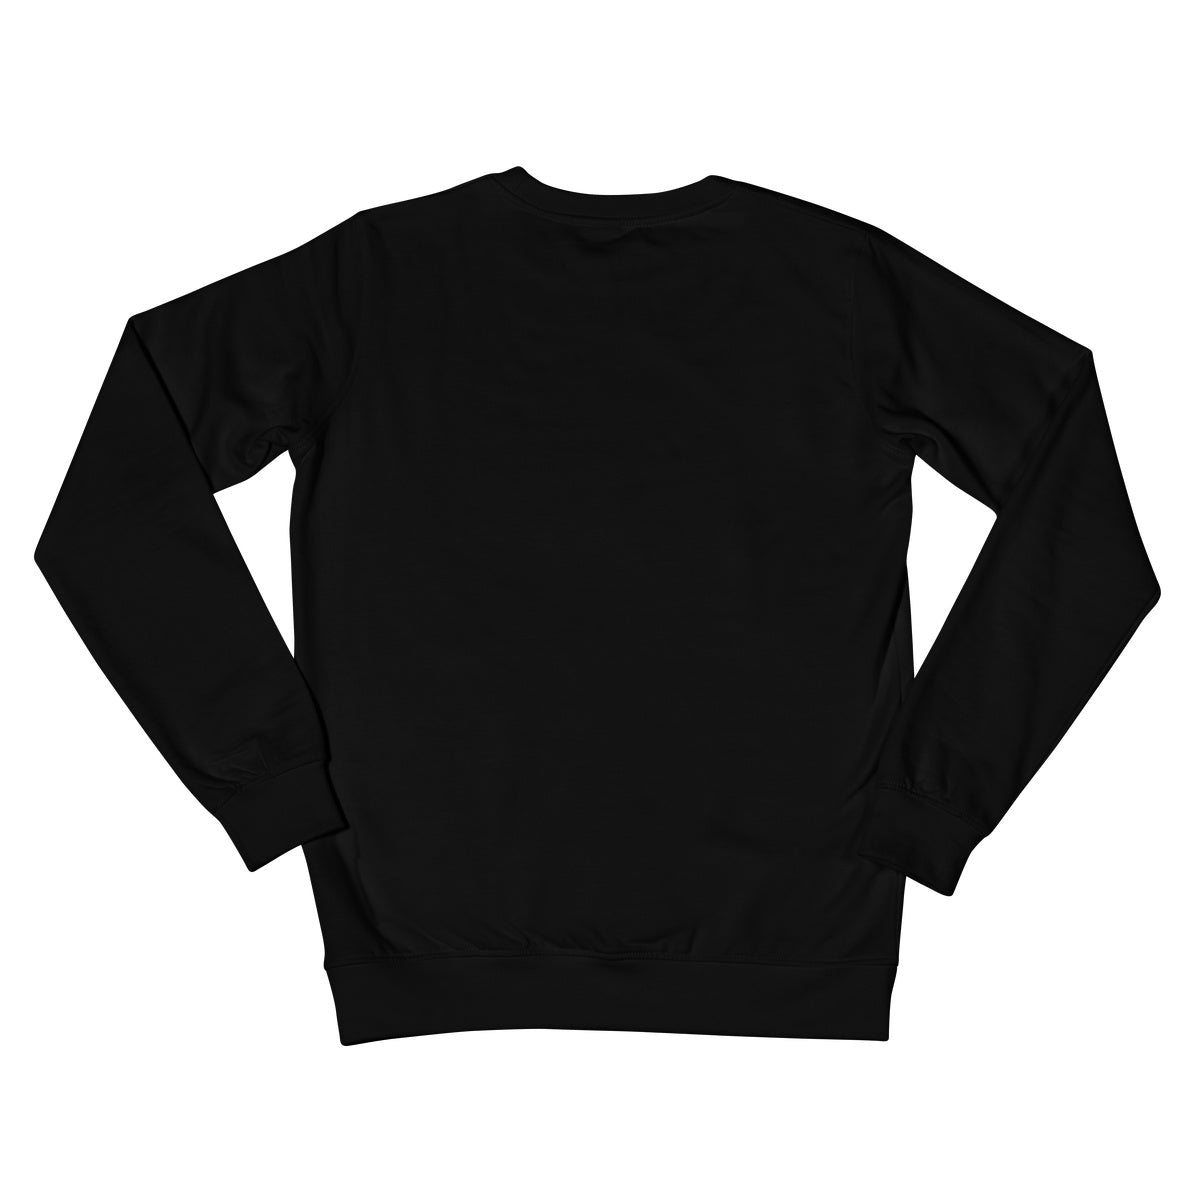 GRAPS White Crew Neck Sweatshirt